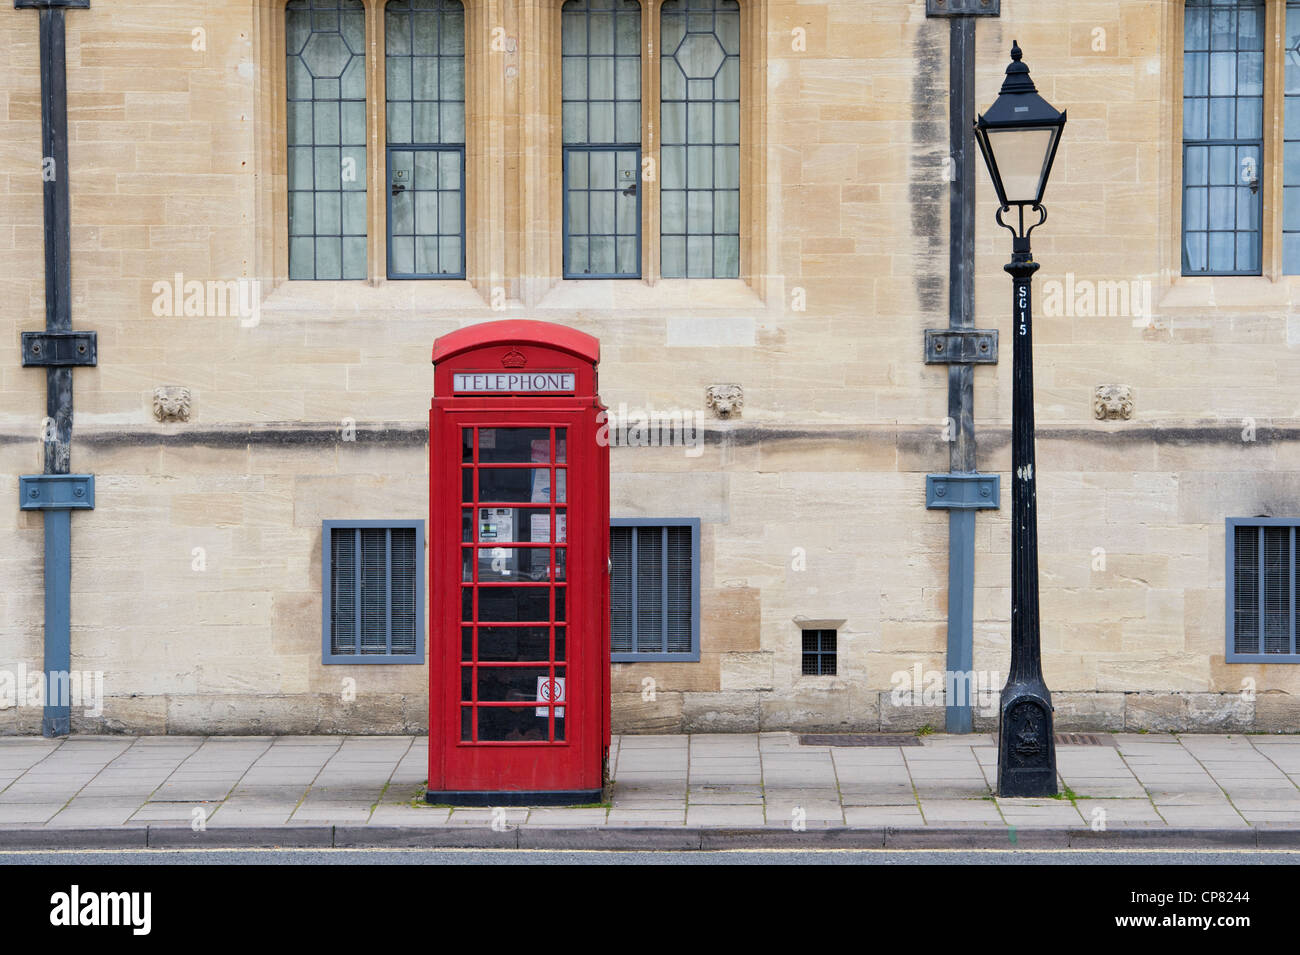 Red Telephone box and lamp post in St Giles, Oxford, Oxfordshire, England - Stock Image